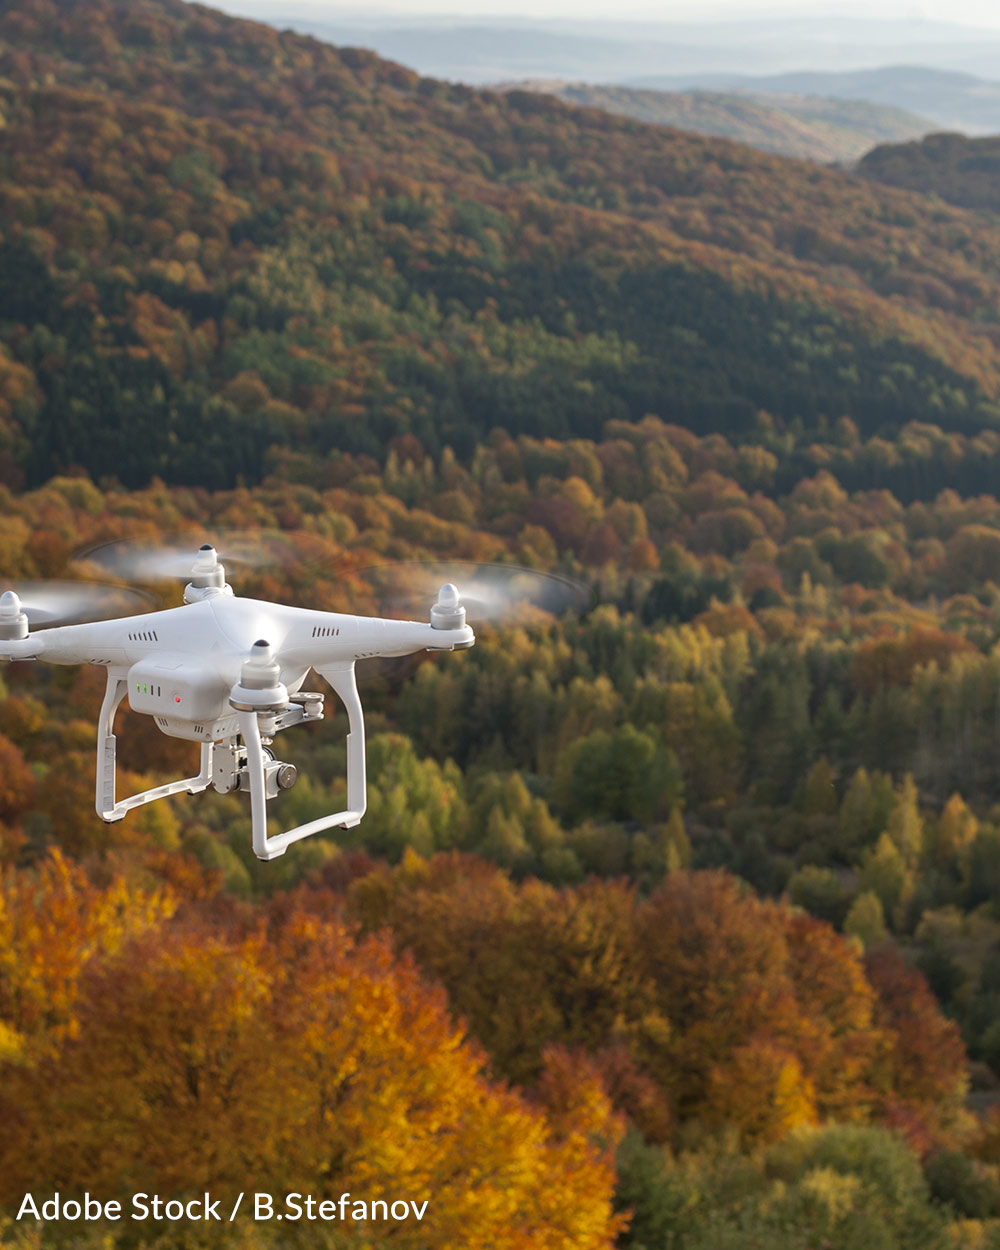 Help us minimize the damage drones present to wildlife.